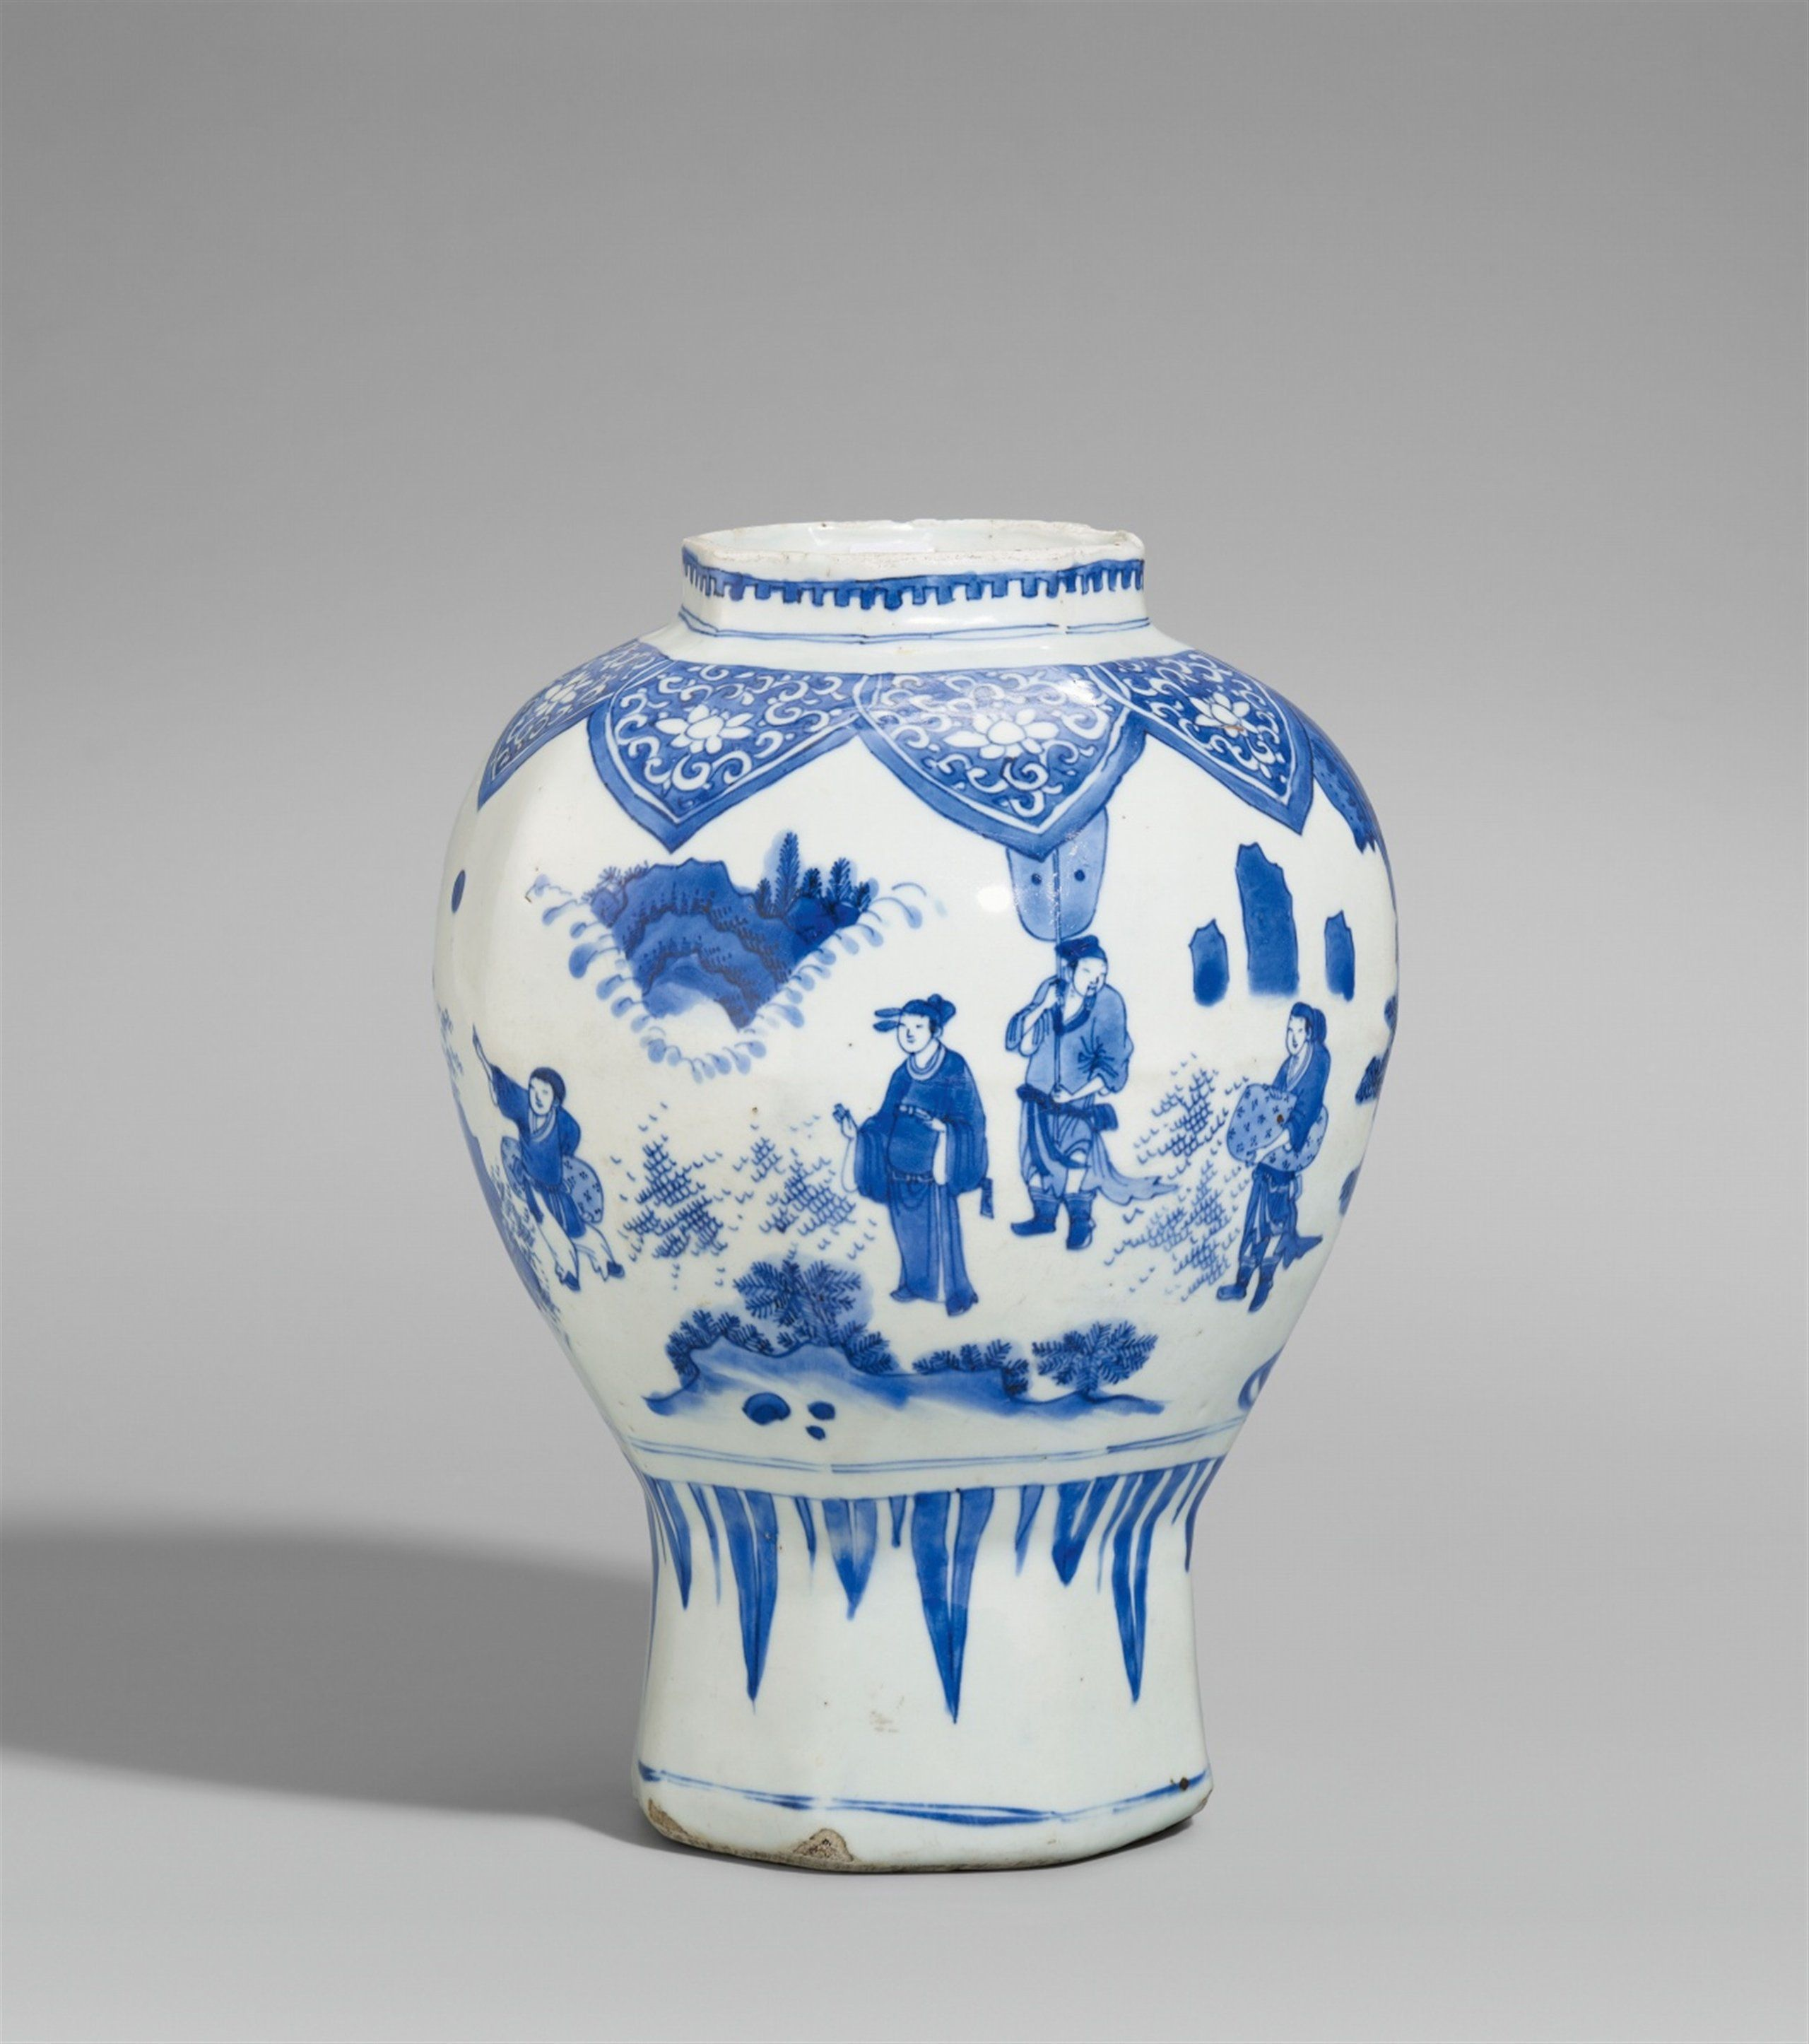 A blue and white octagonal baluster vase transitional period a blue and white octagonal baluster vase transitional period 17th century reviewsmspy